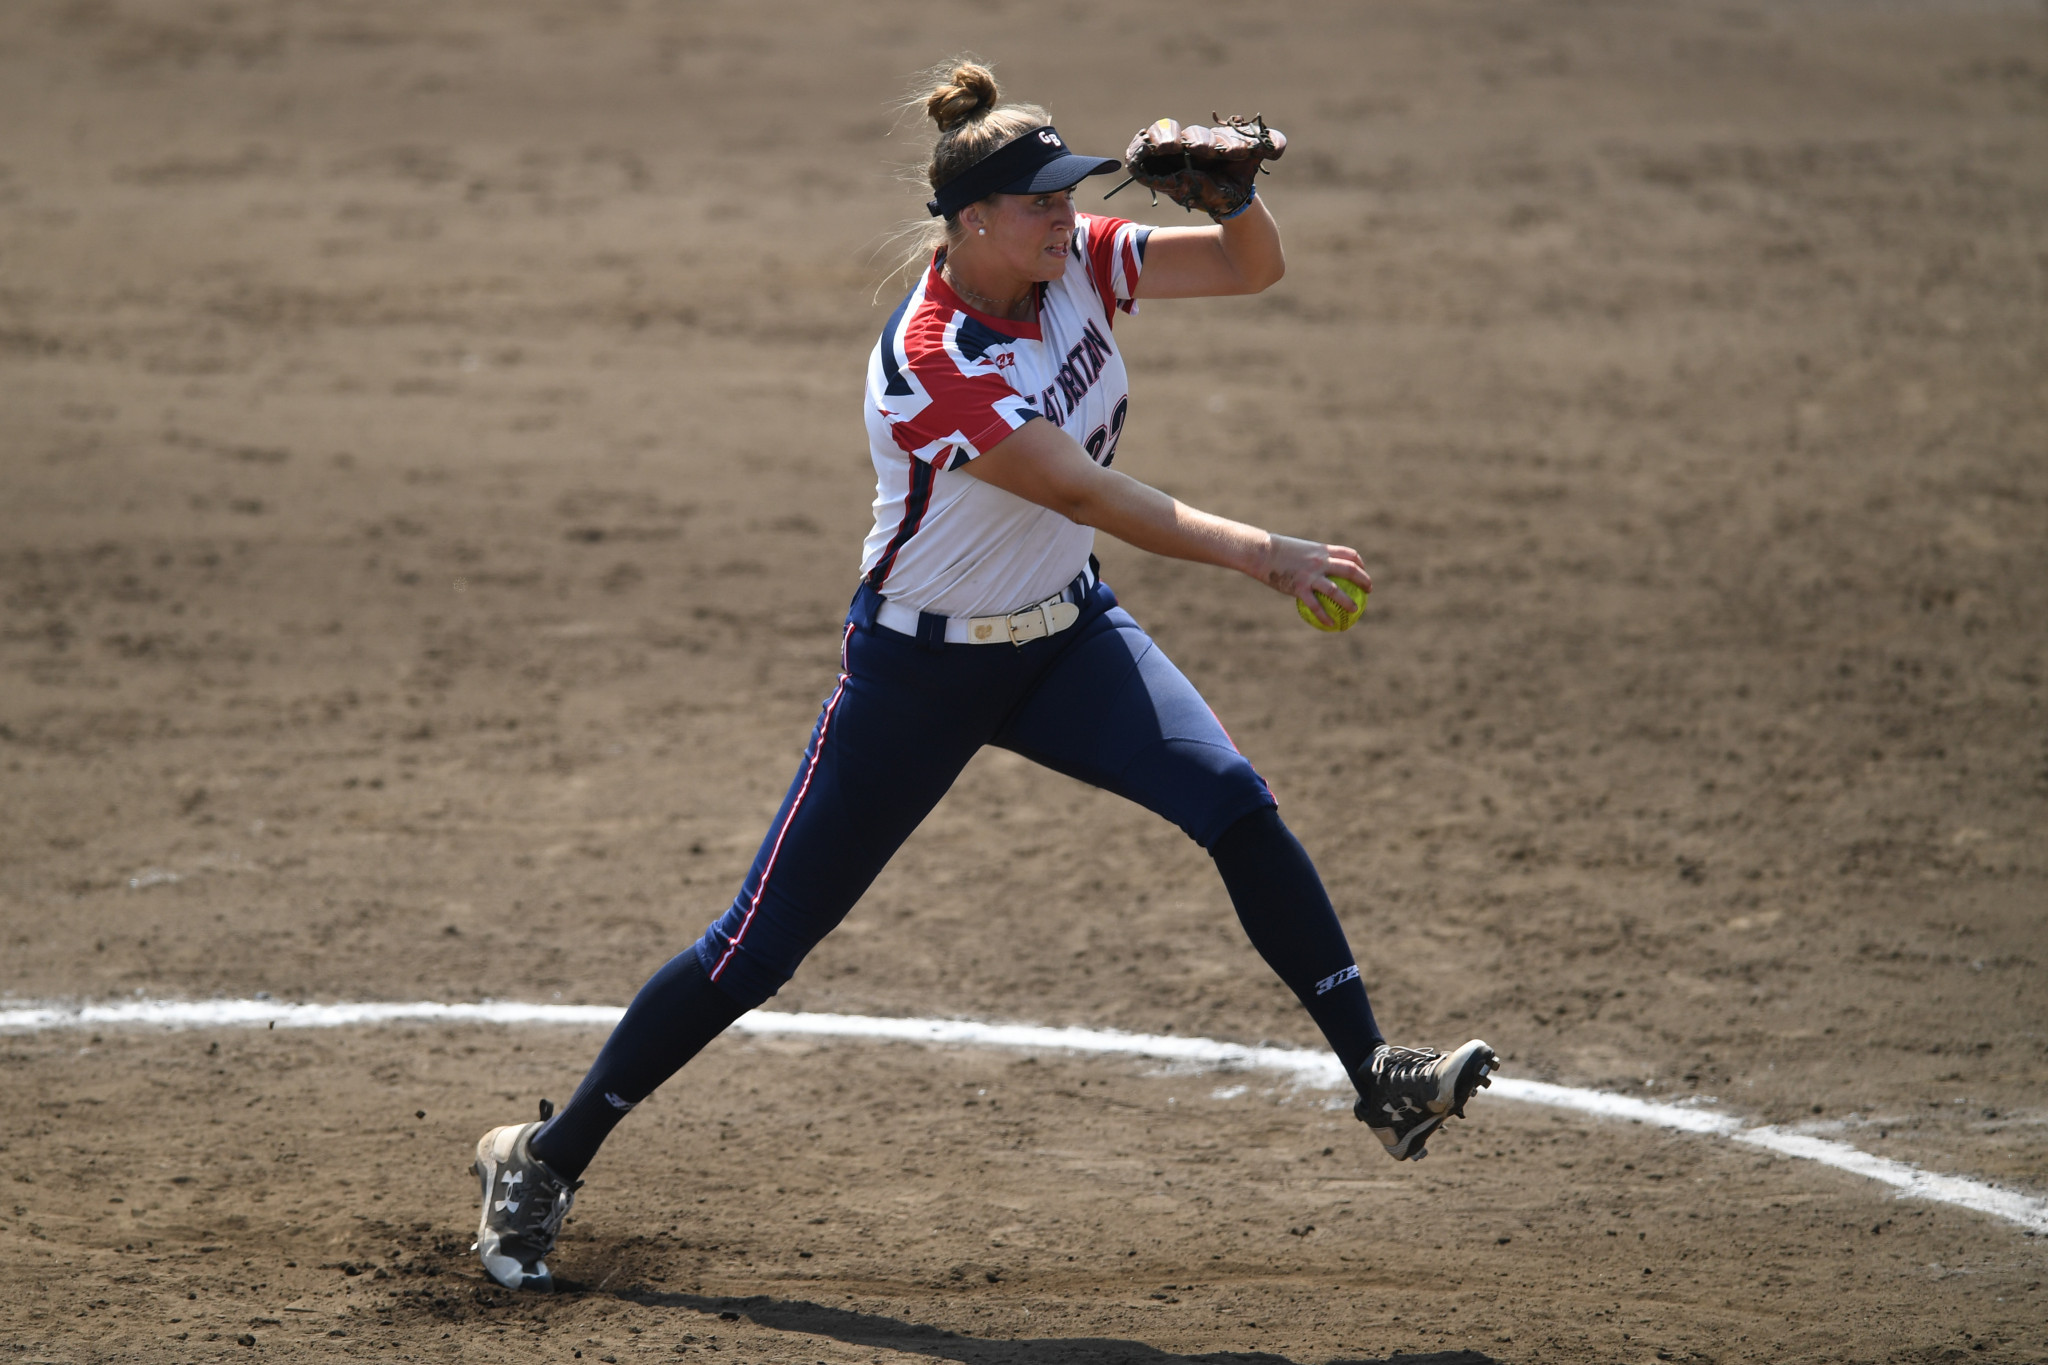 Britain's women's softball team is one of the best in Europe ©Getty Images